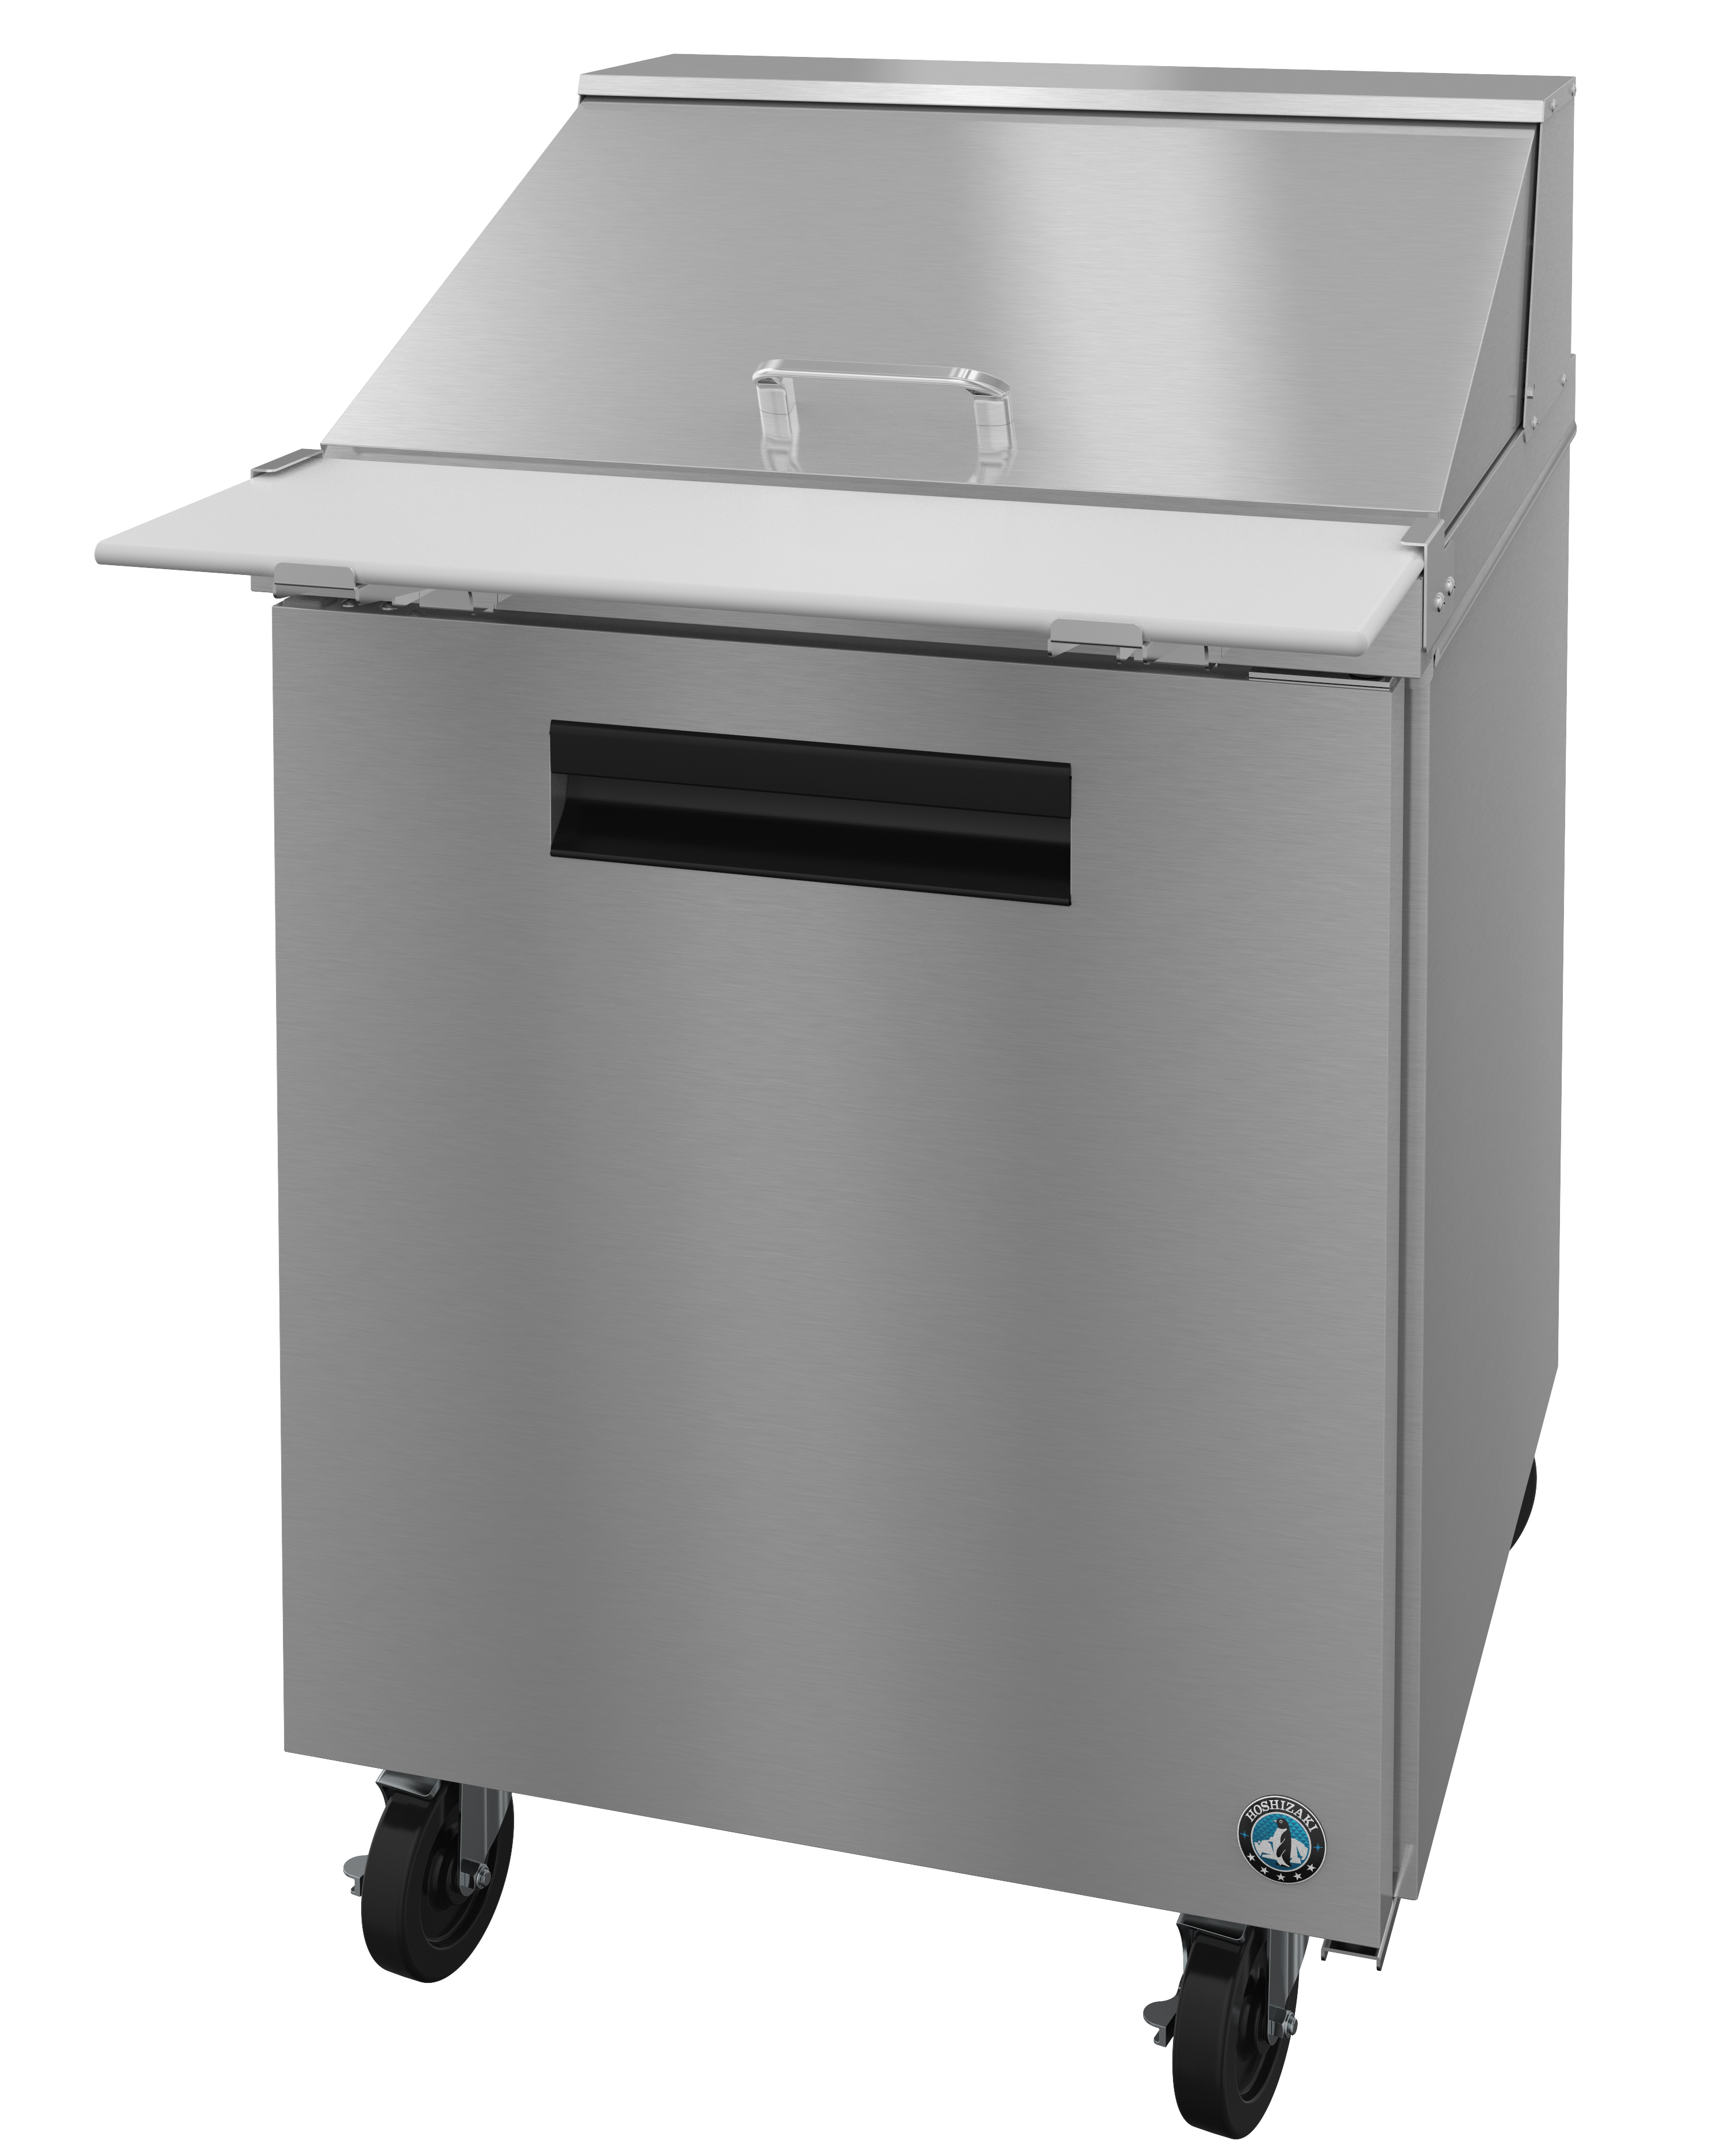 CRMRM Refrigerator Single Section Mega Top Prep Table - 6 foot stainless steel prep table